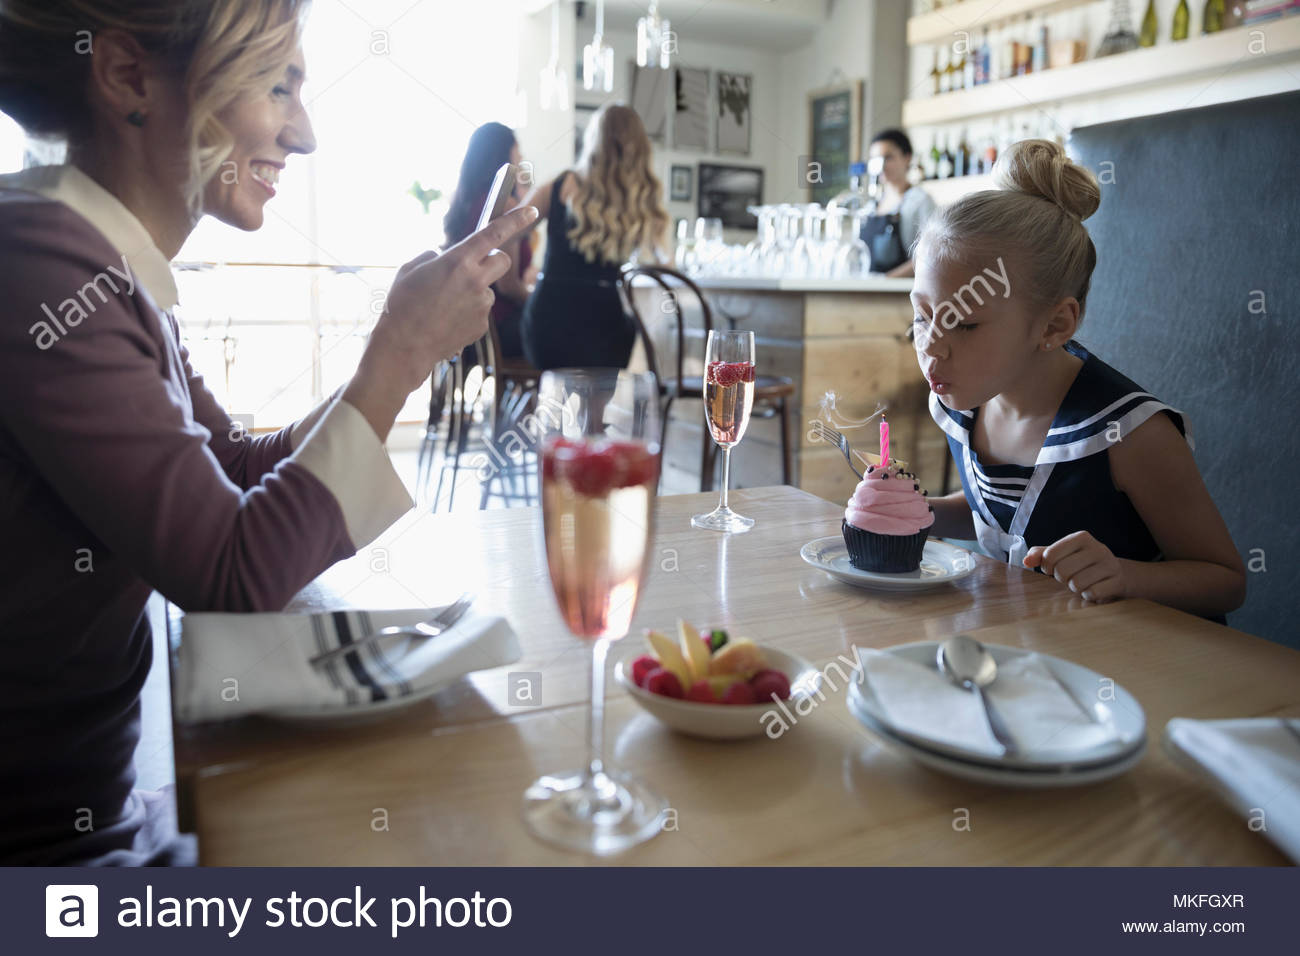 Mother with camera phone photographing daughter blowing out birthday candle on cupcake in cafe - Stock Image